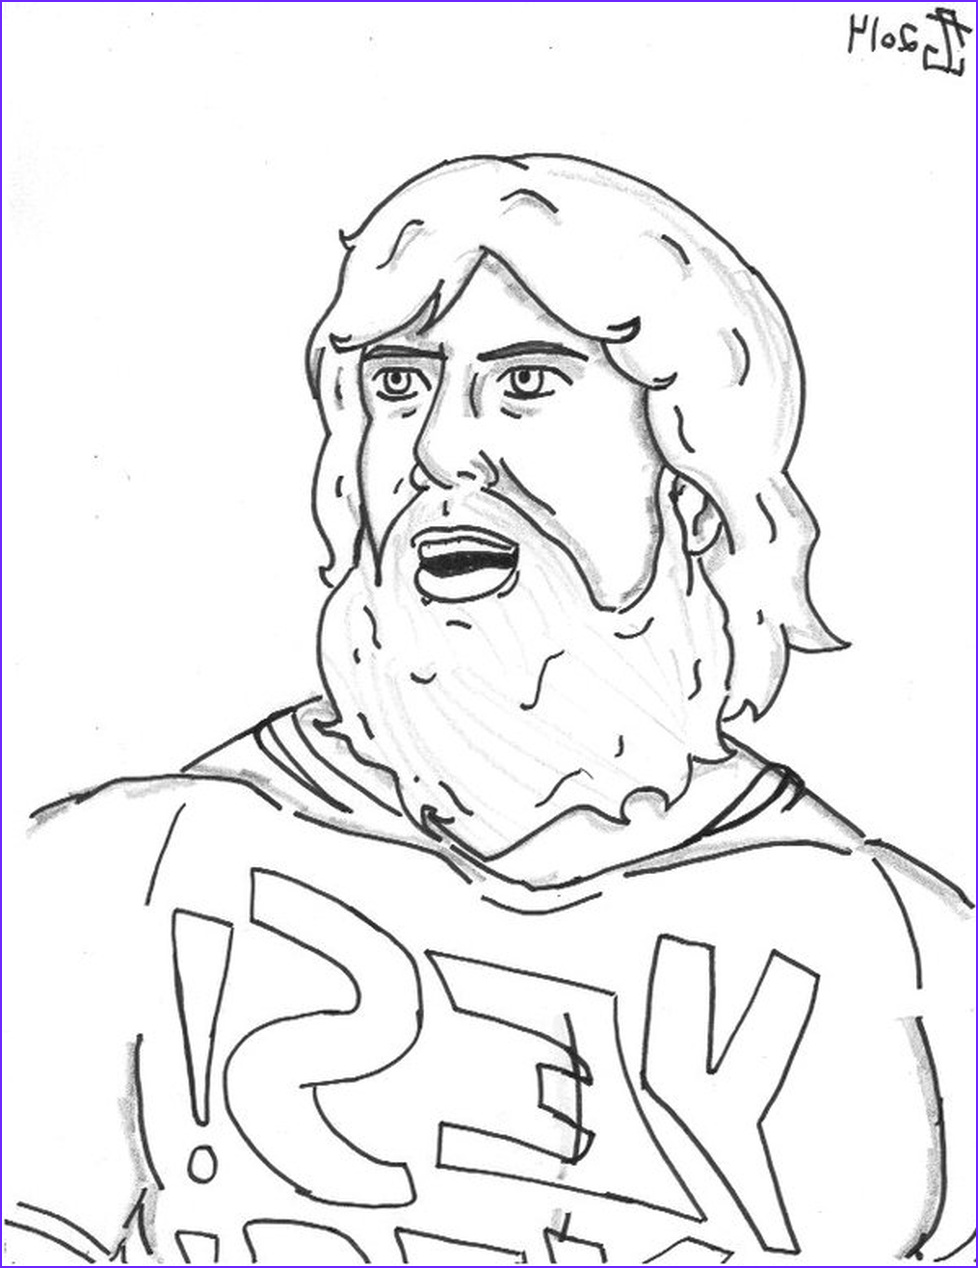 Wwe Coloring Pages New Stock Get This Printable Wwe Coloring Pages Daniel Bryan